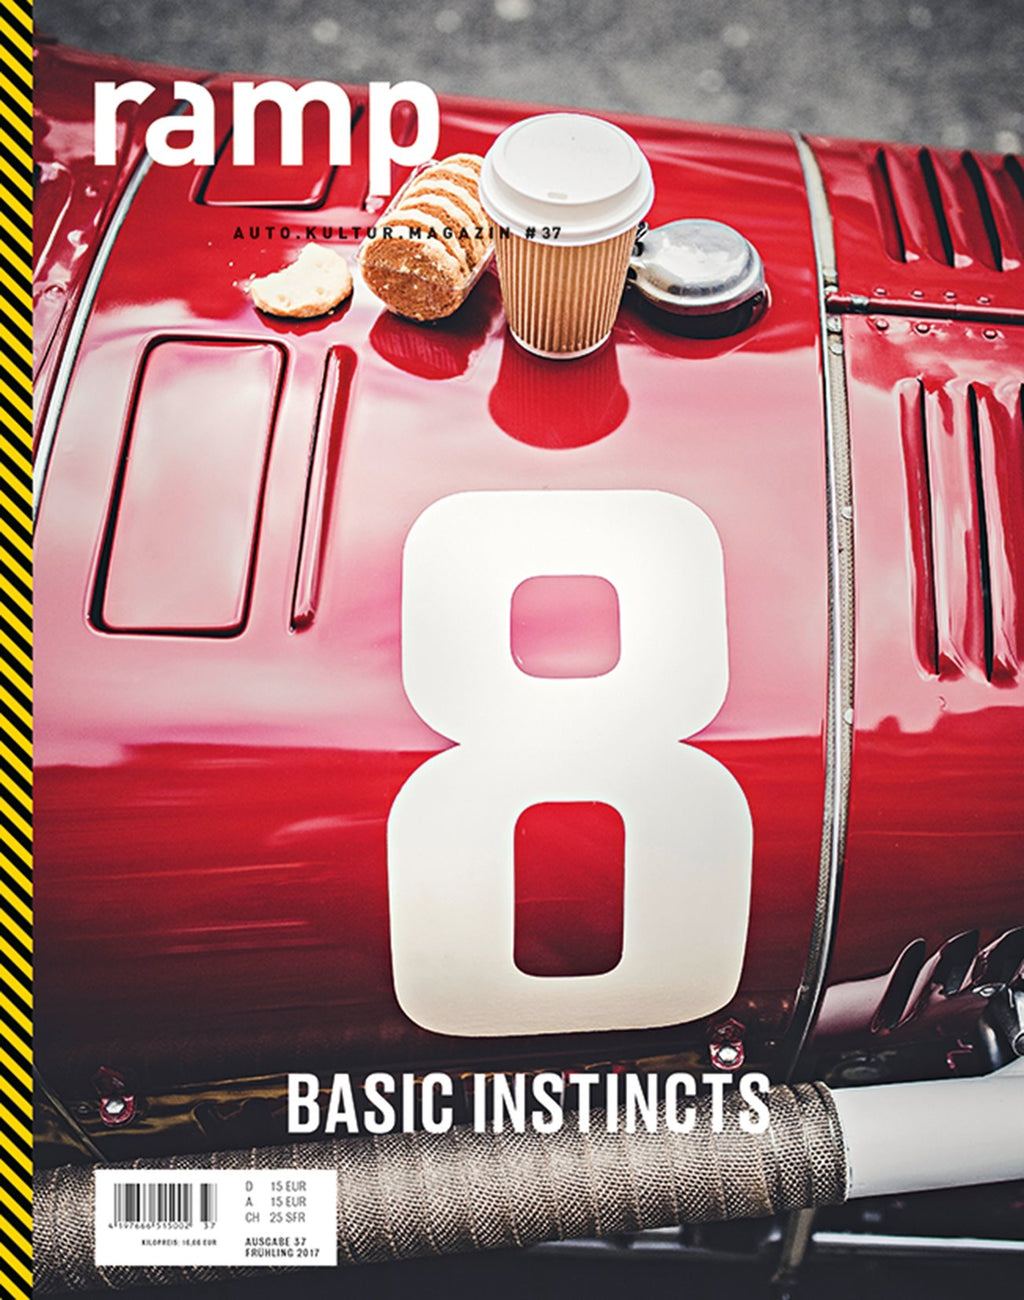 ramp #37 – Basic Instincts - ramp.space